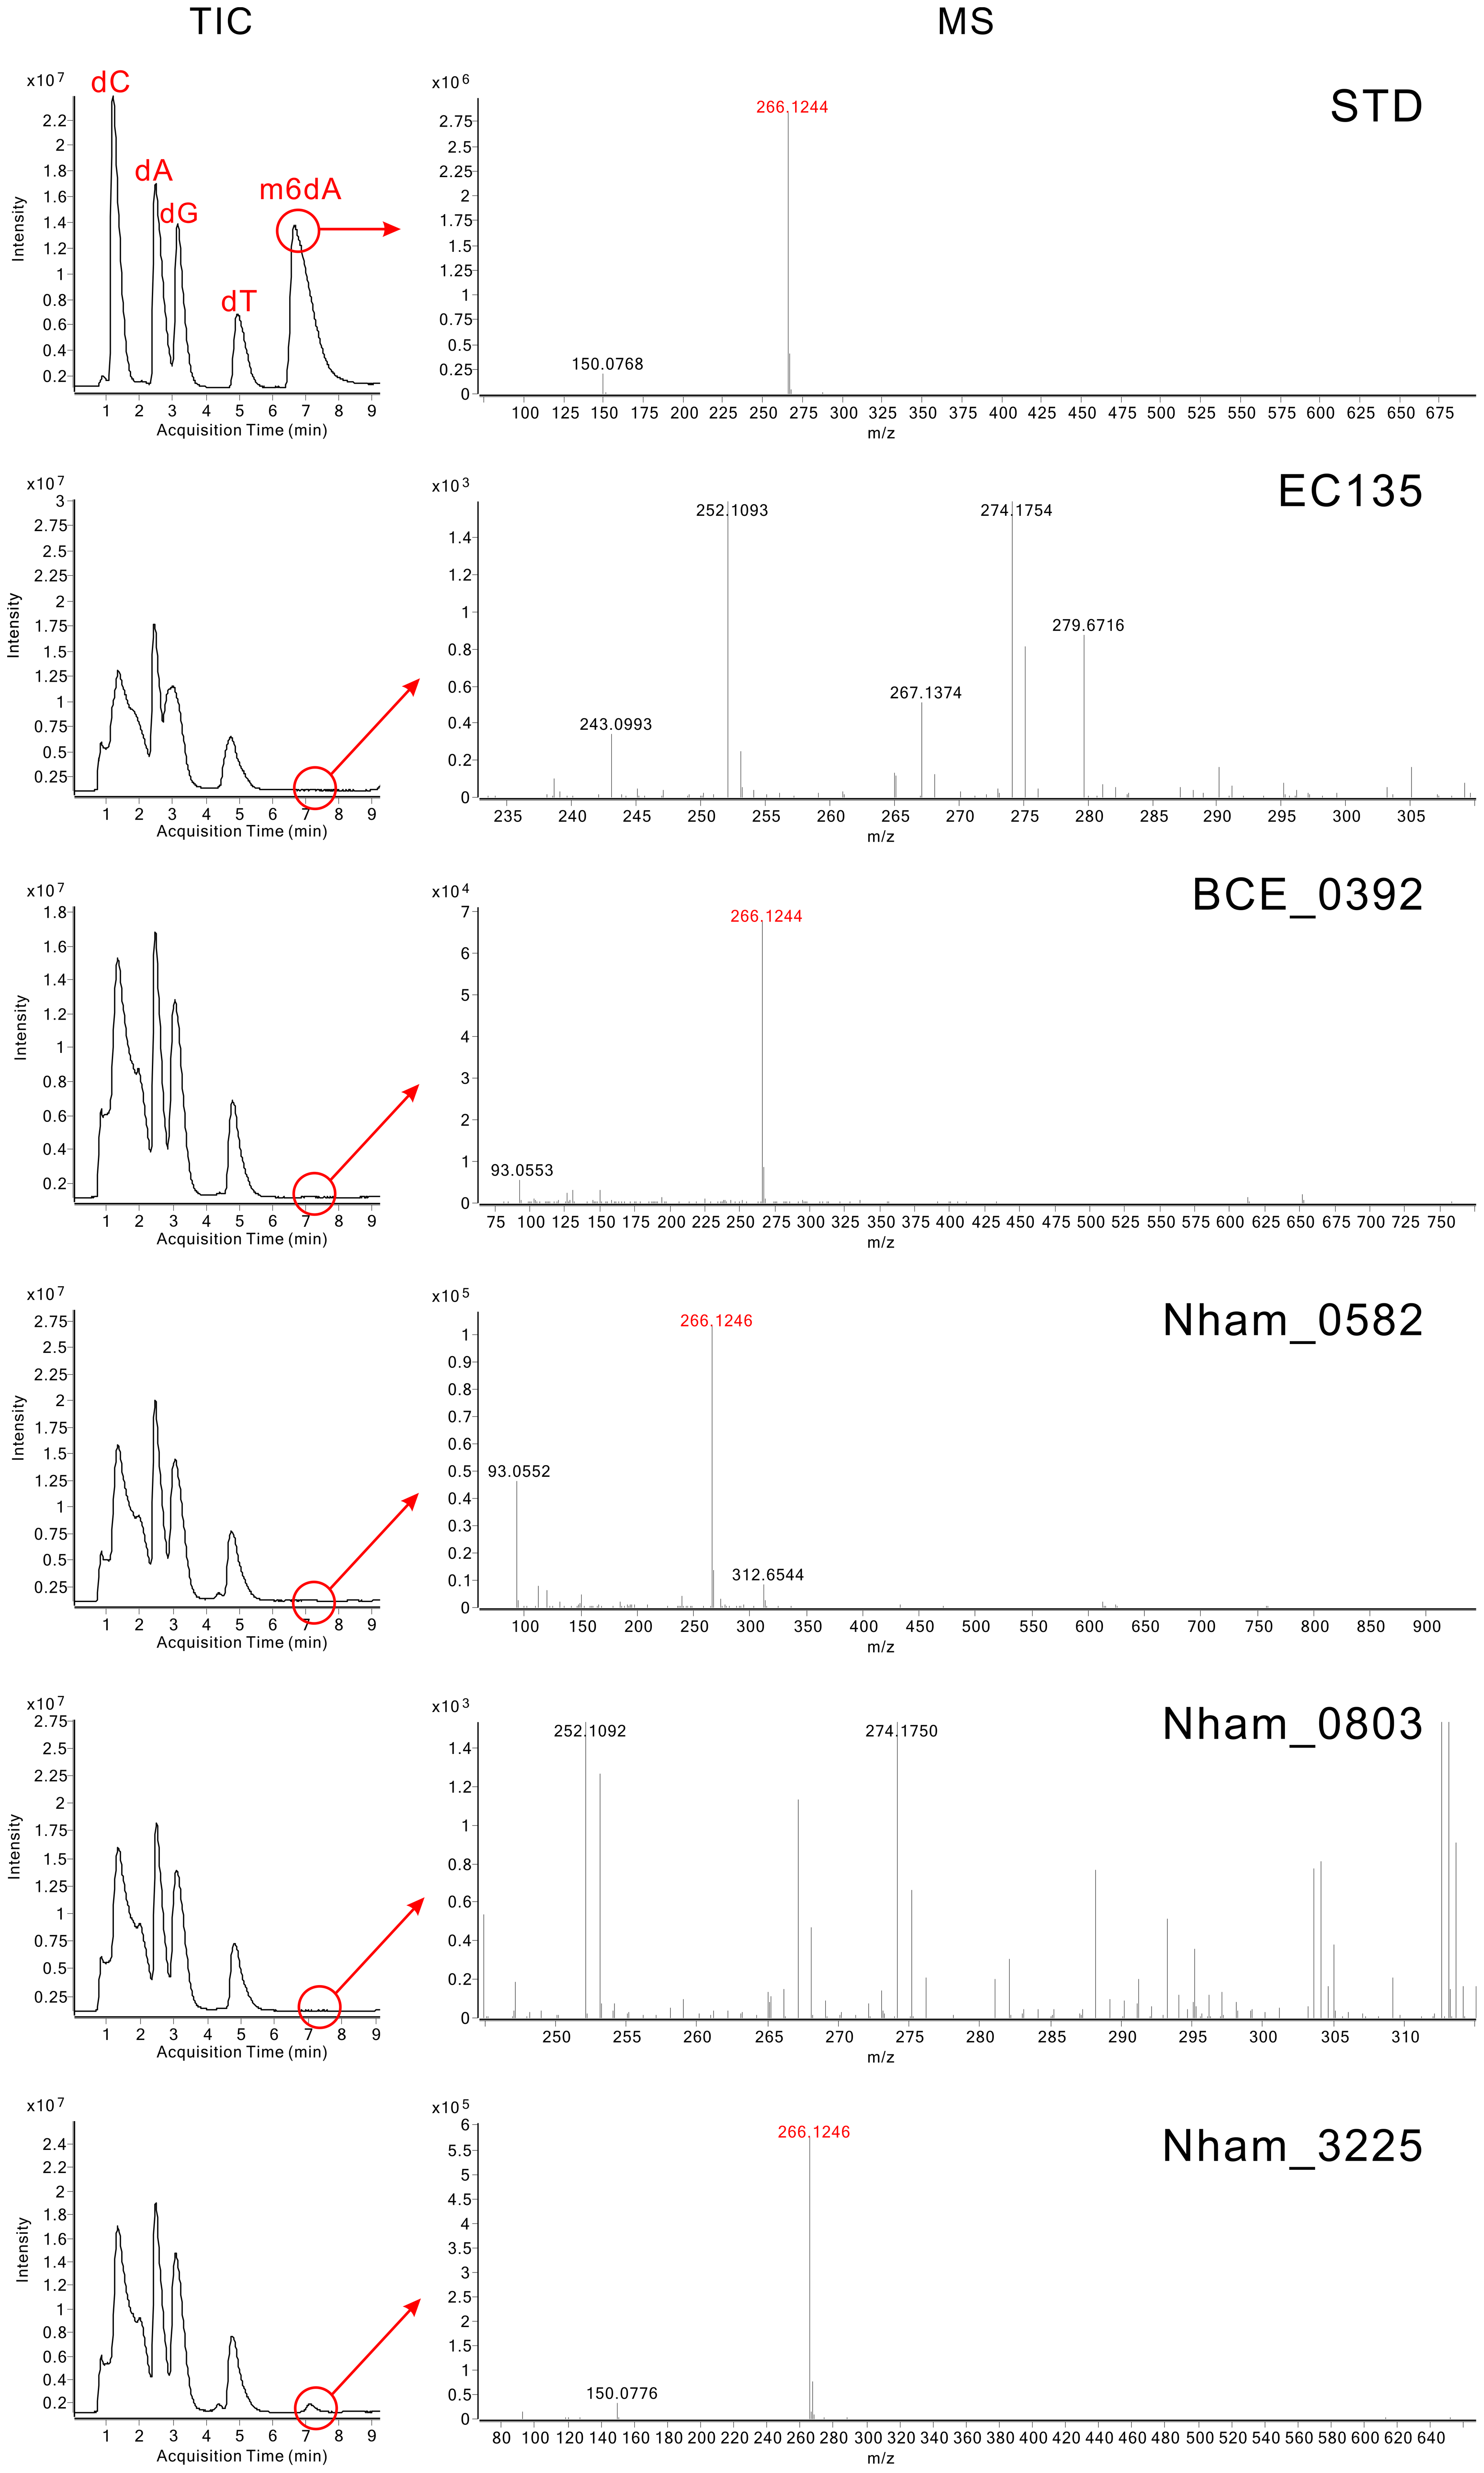 Analysis of m6dA in the DNA of MTases-expressing <i>E. coli</i> strains using HPLC-QTOF/MS.